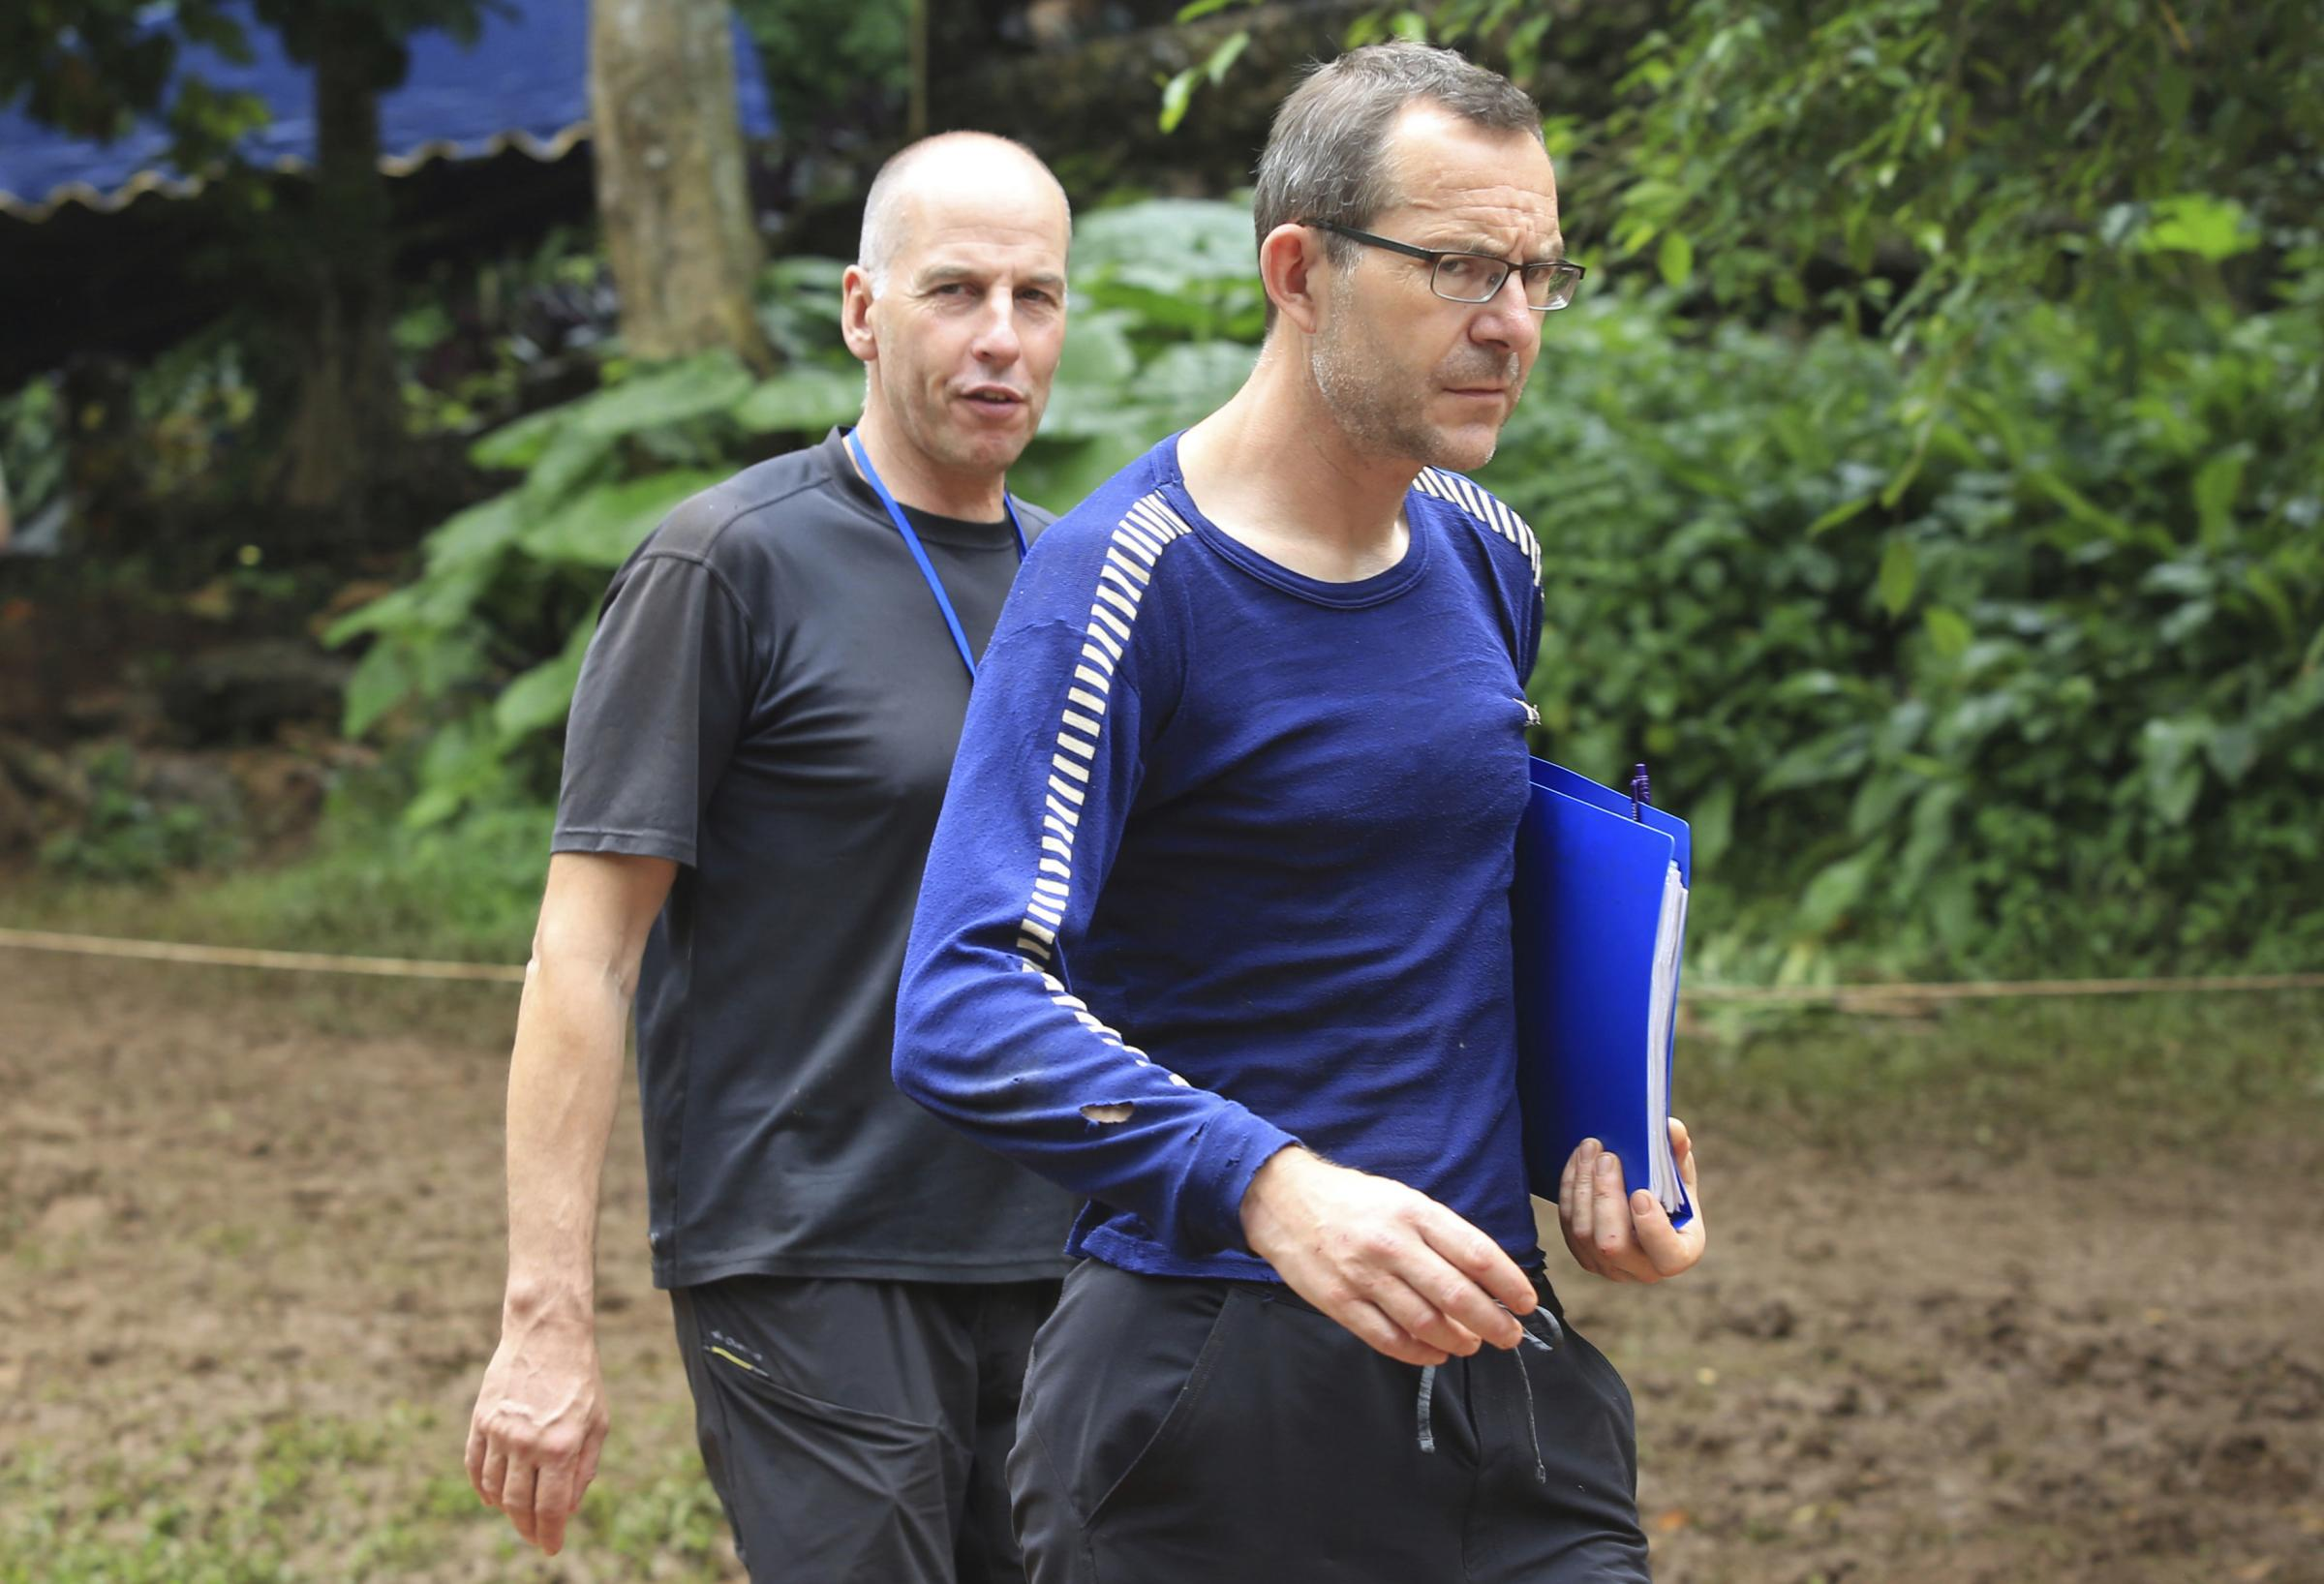 Richard Stanton, left, and John Volanthen arrive in Mae Sai, Chiang Rai province, in northern Thailand, Tuesday, July 3, 2018. (AP Photo).